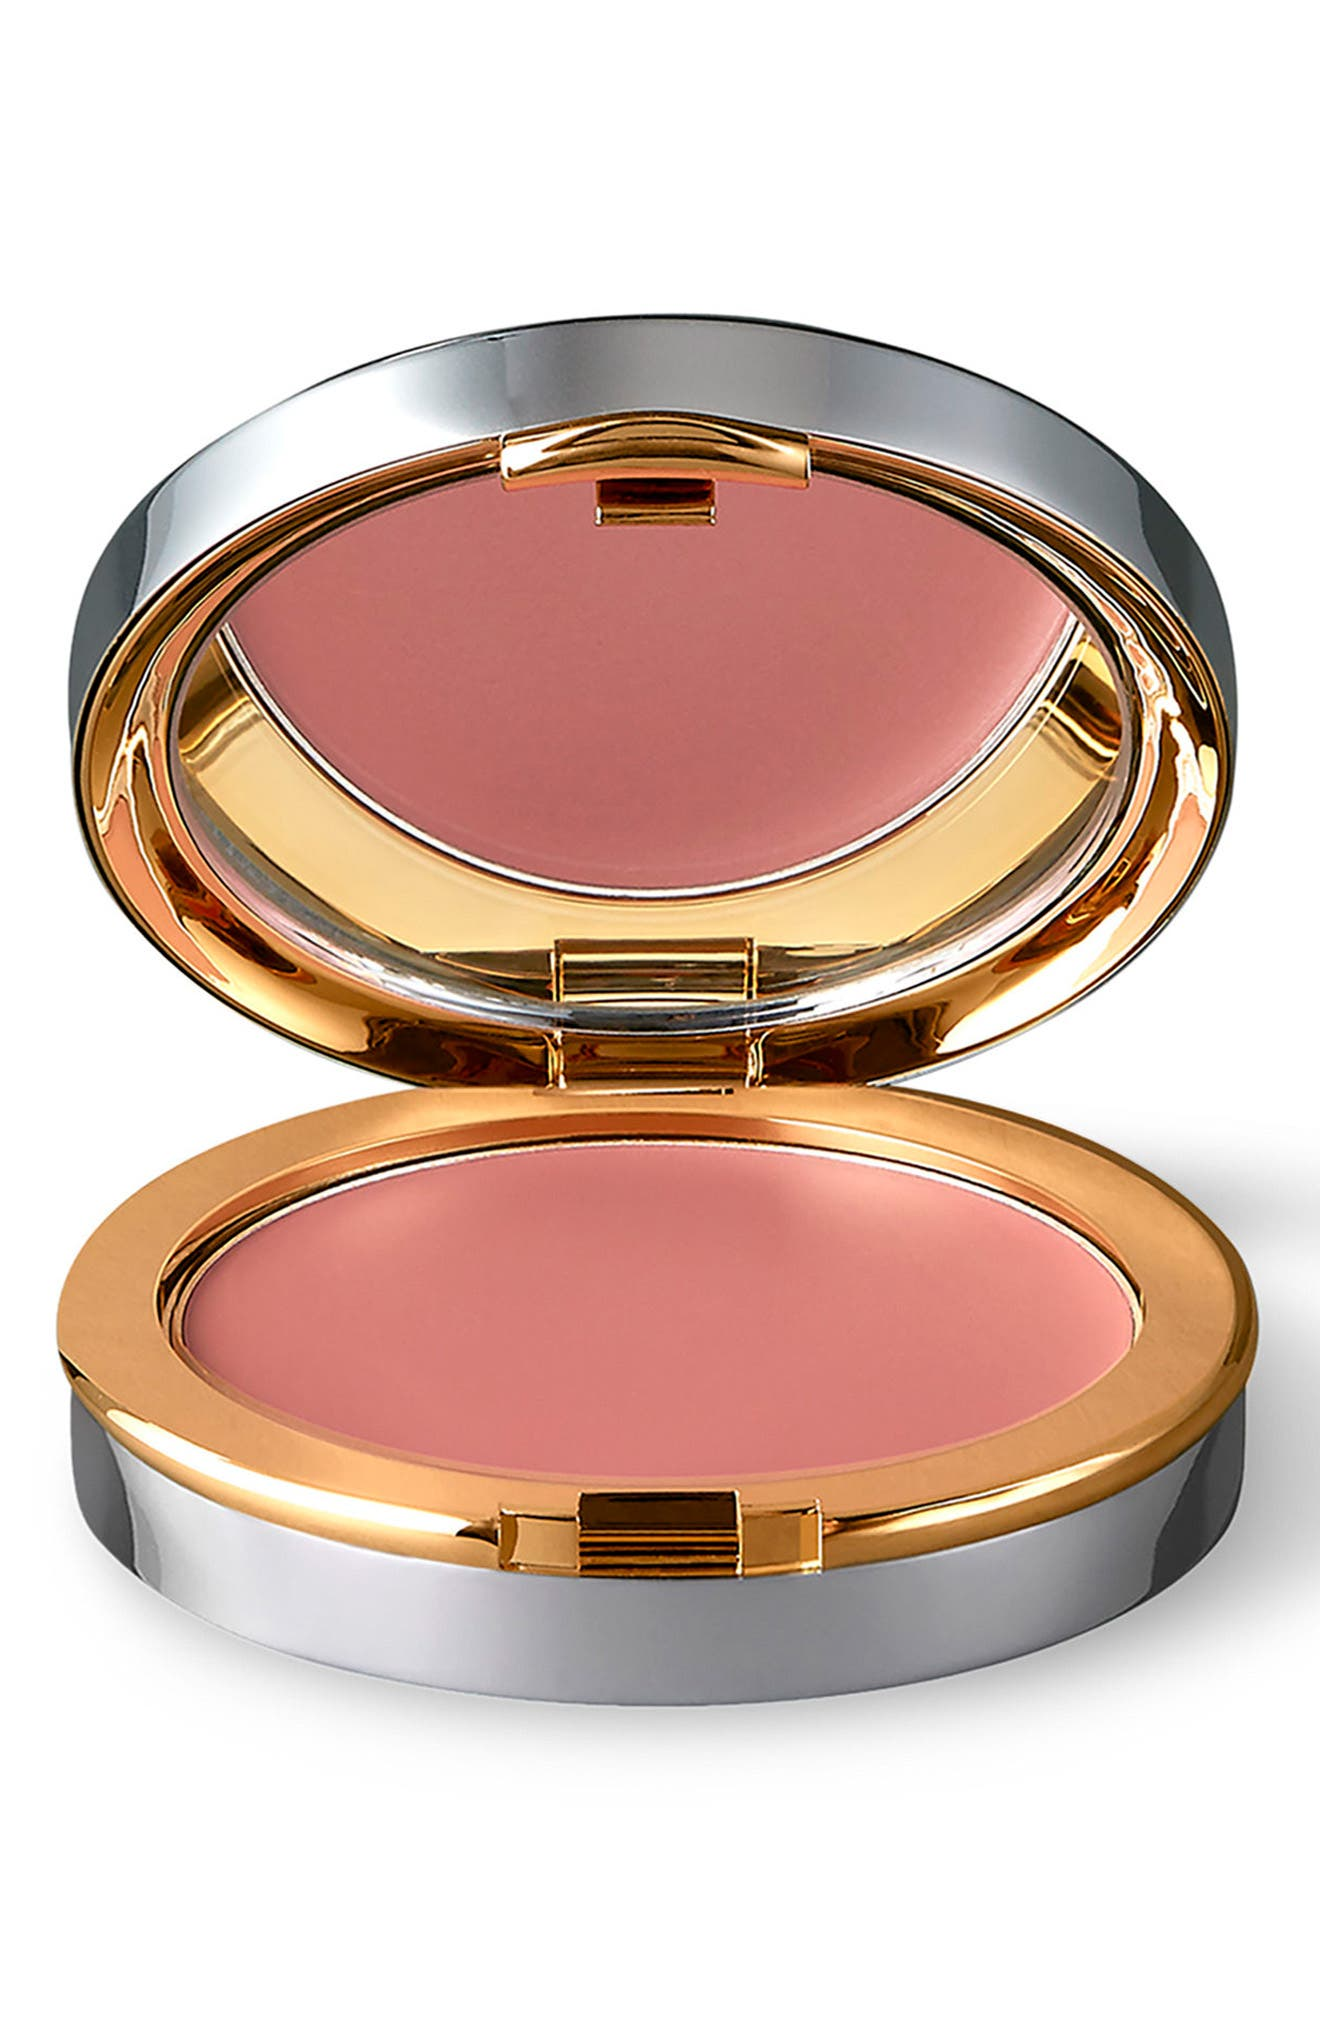 Cellular Radiance Cream Blush,                             Main thumbnail 1, color,                             BERRY GLOW